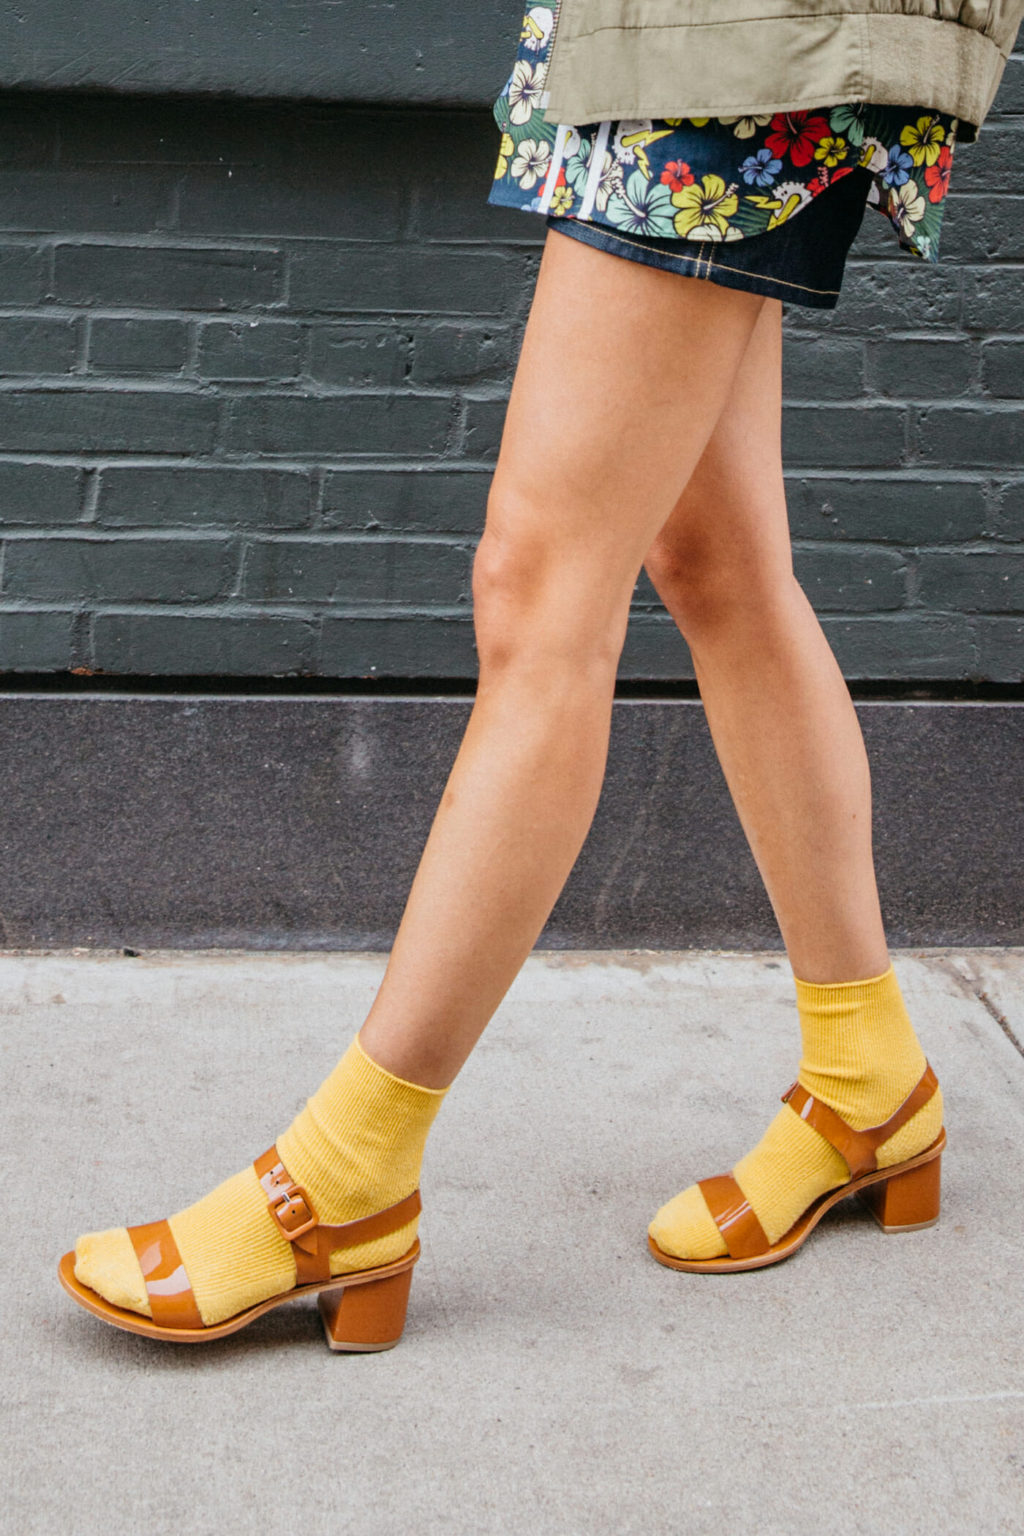 Sandals-with-Socks-1024x1536 Top 10 Outdated Fashion and Clothing Trends to Avoid in 2021